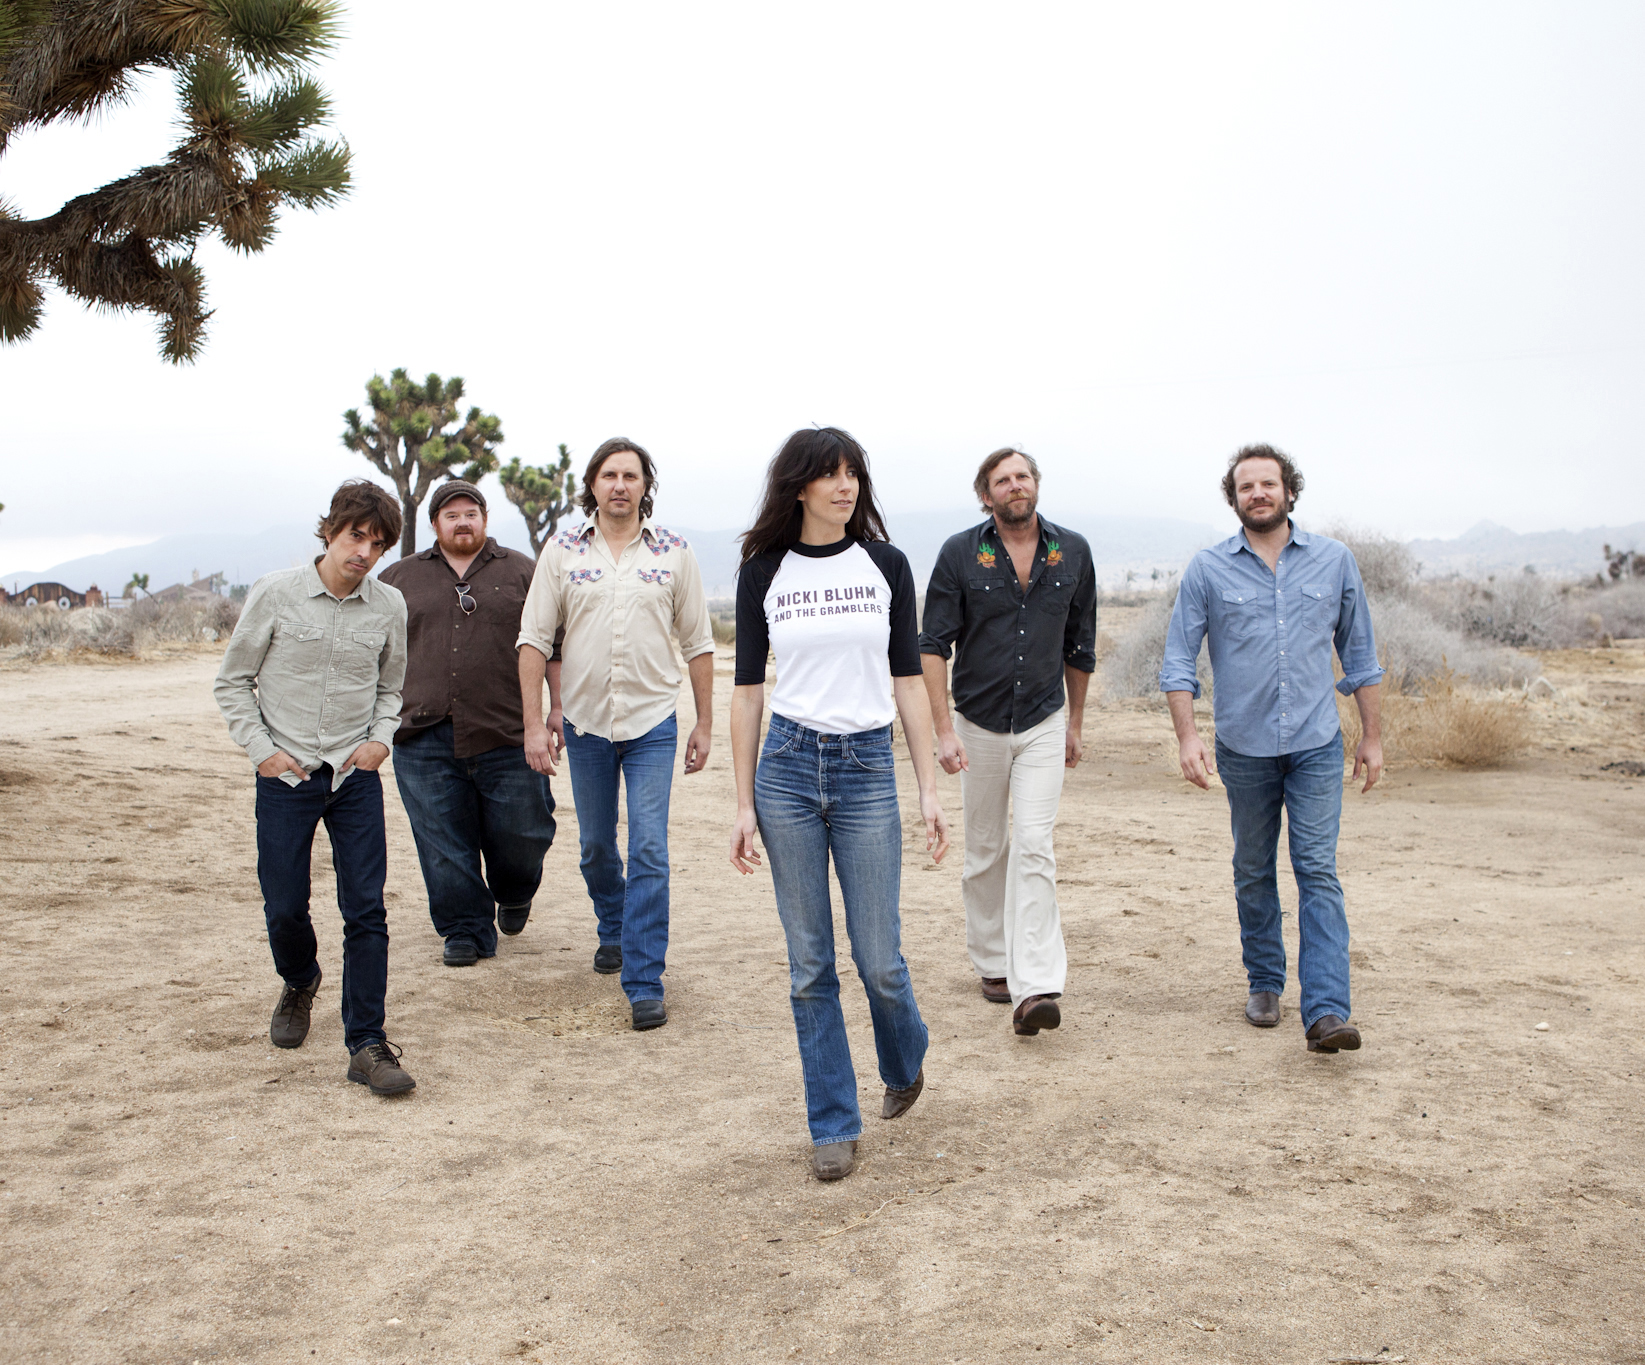 Kill You to Call – Nicki Bluhm and The Blues as Connection